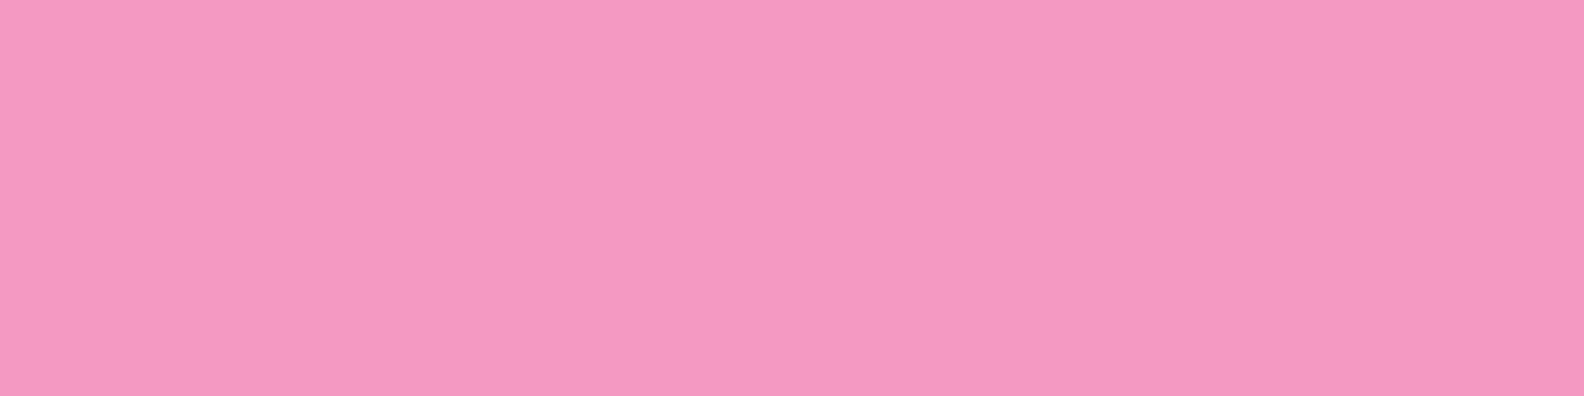 1584x396 Pastel Magenta Solid Color Background